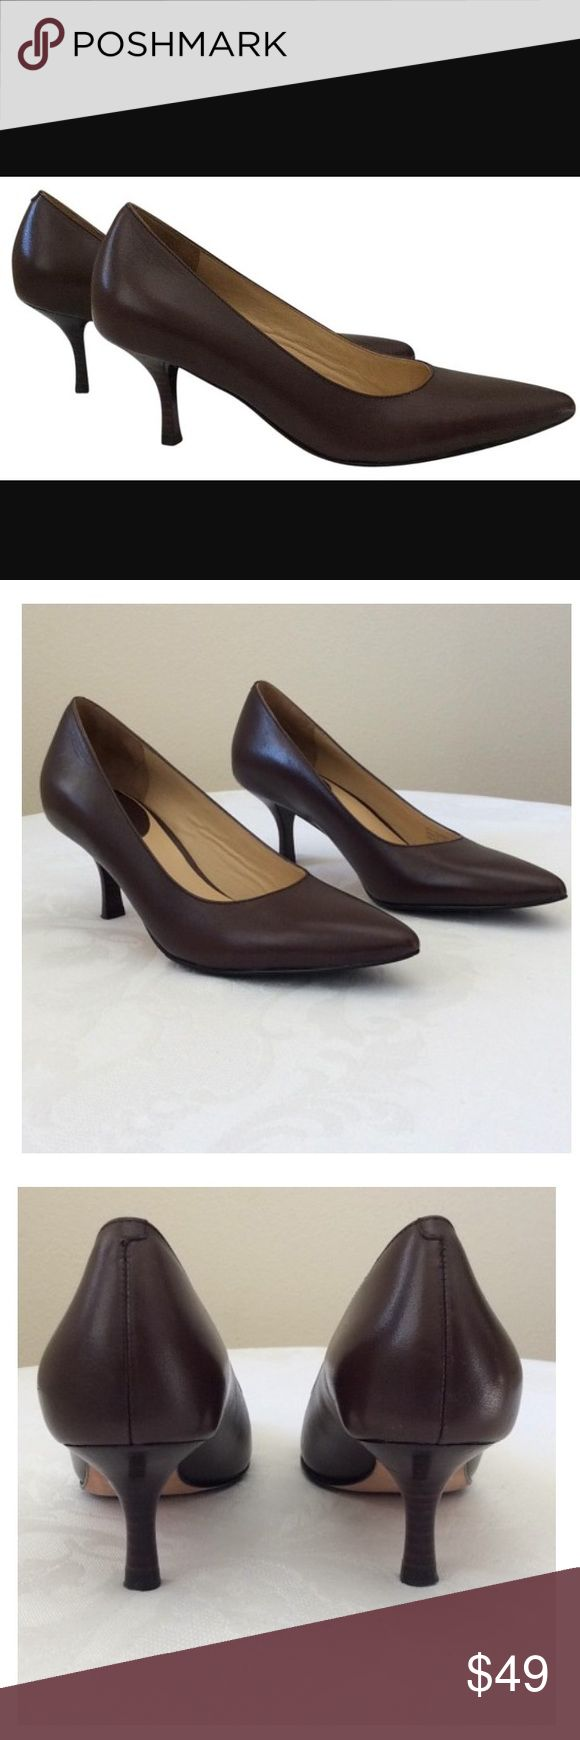 "Cole Hann Nike Air super comfy point toe pumps 👠 These Cole Hann Nike ""Air Rea"" pointy toe pumps are classically styled and supremely comfortable ! Chestnut brown, size 7.5. New- some very minor scuffs on the soles from being worn in the store (see photos). Cole Hann  Shoes Heels"